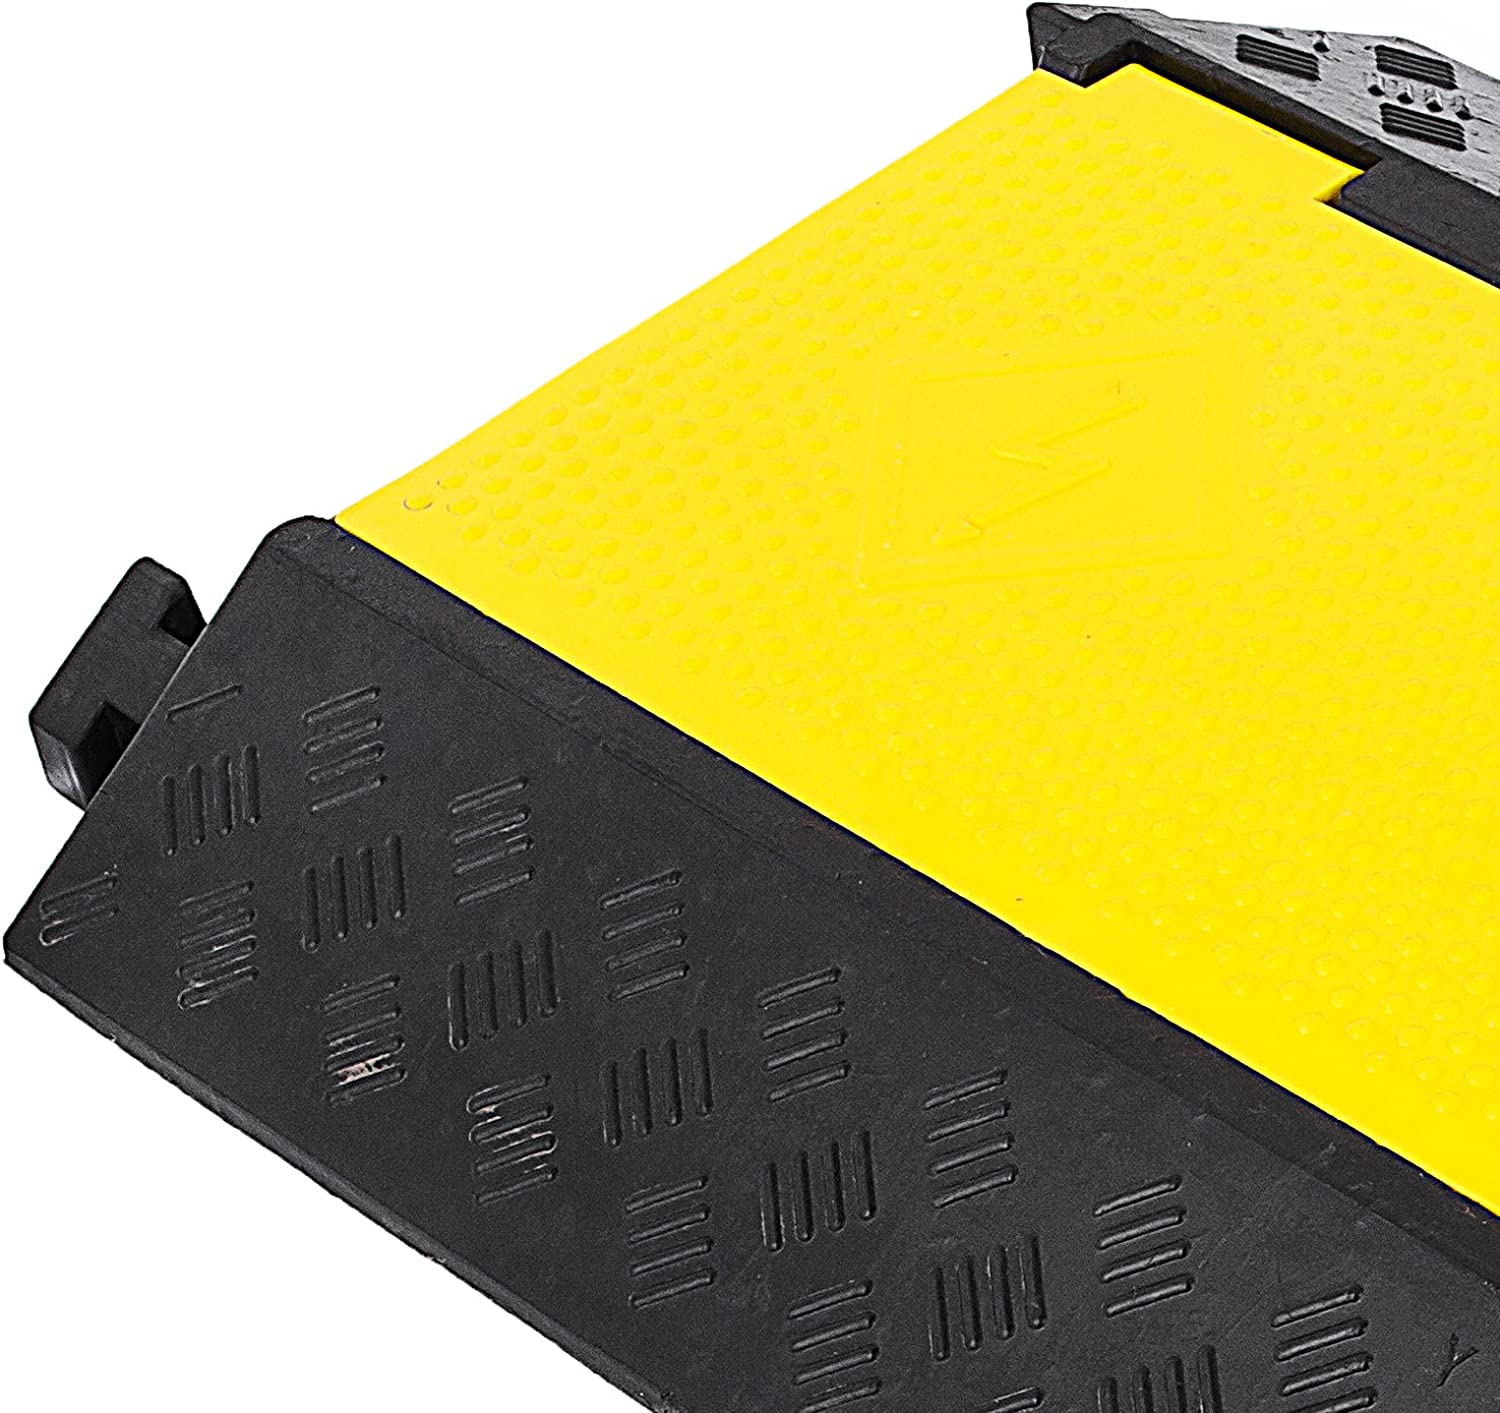 2-Channel, 1Pack//6Ft Hopopular 1PCS 6 Feet Rubber Speed Bump Driveway Modular Heavy Duty Speed Bumps 2 Channel Cable Protector Ramp